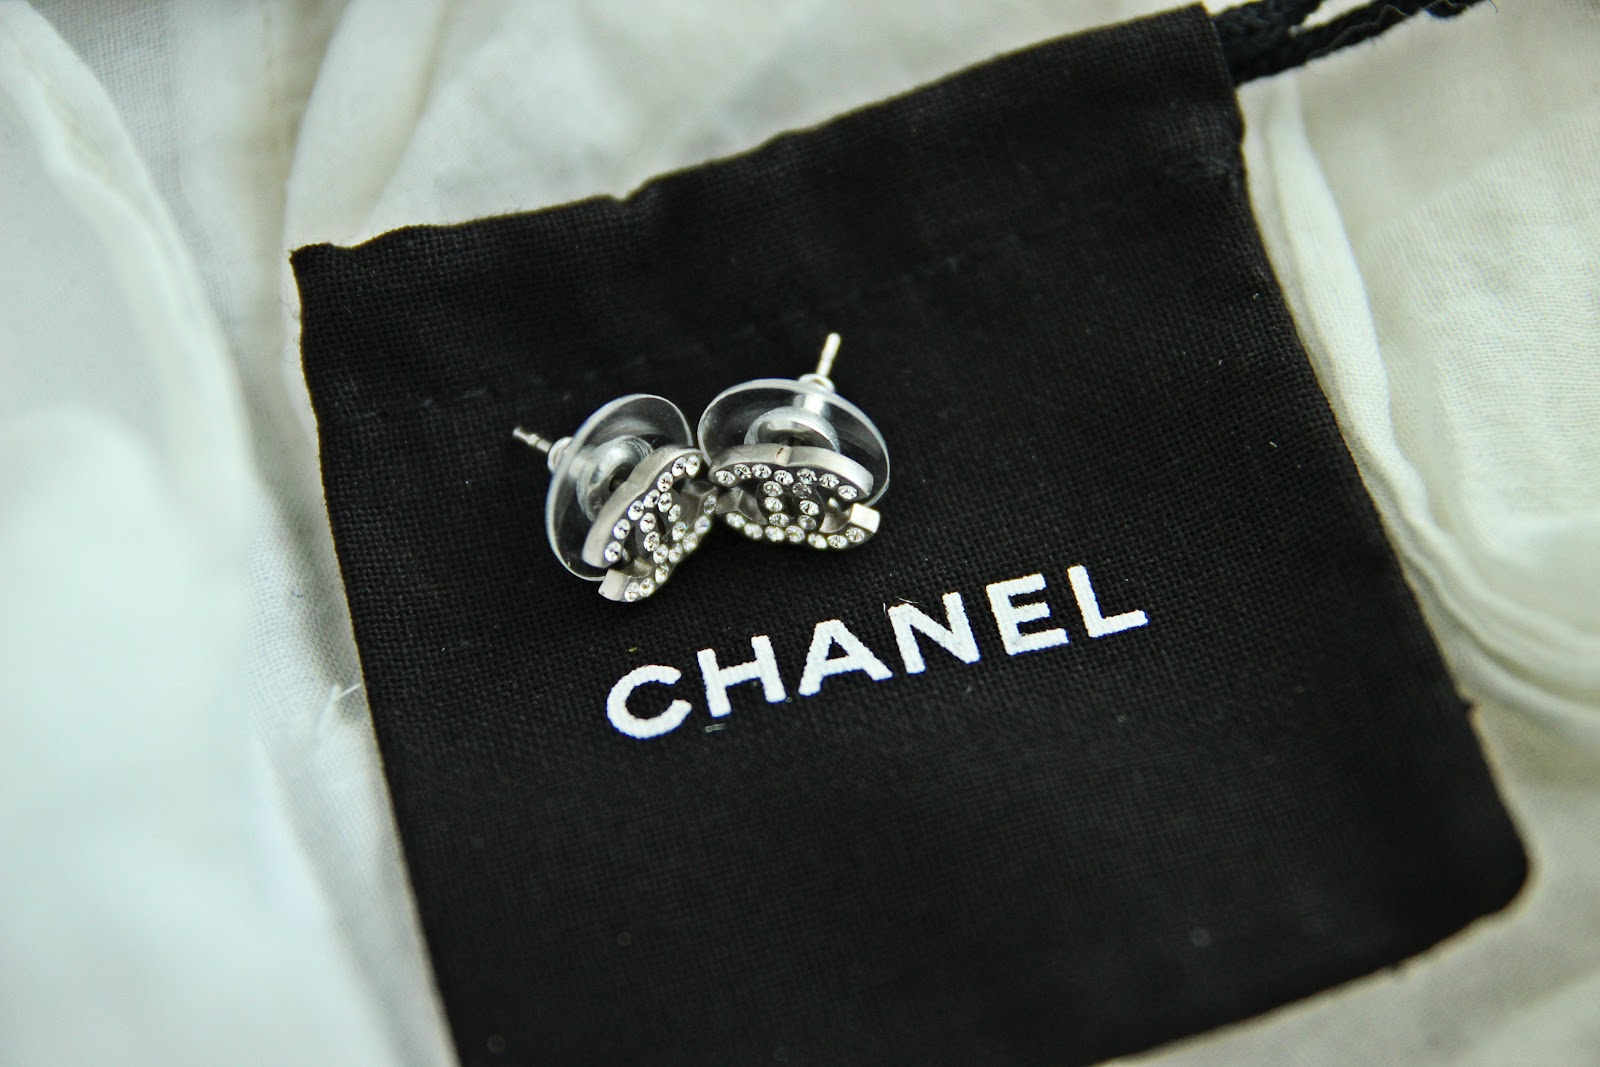 Chanel Double c Stud Earrings Here Chanel Stud Earrings